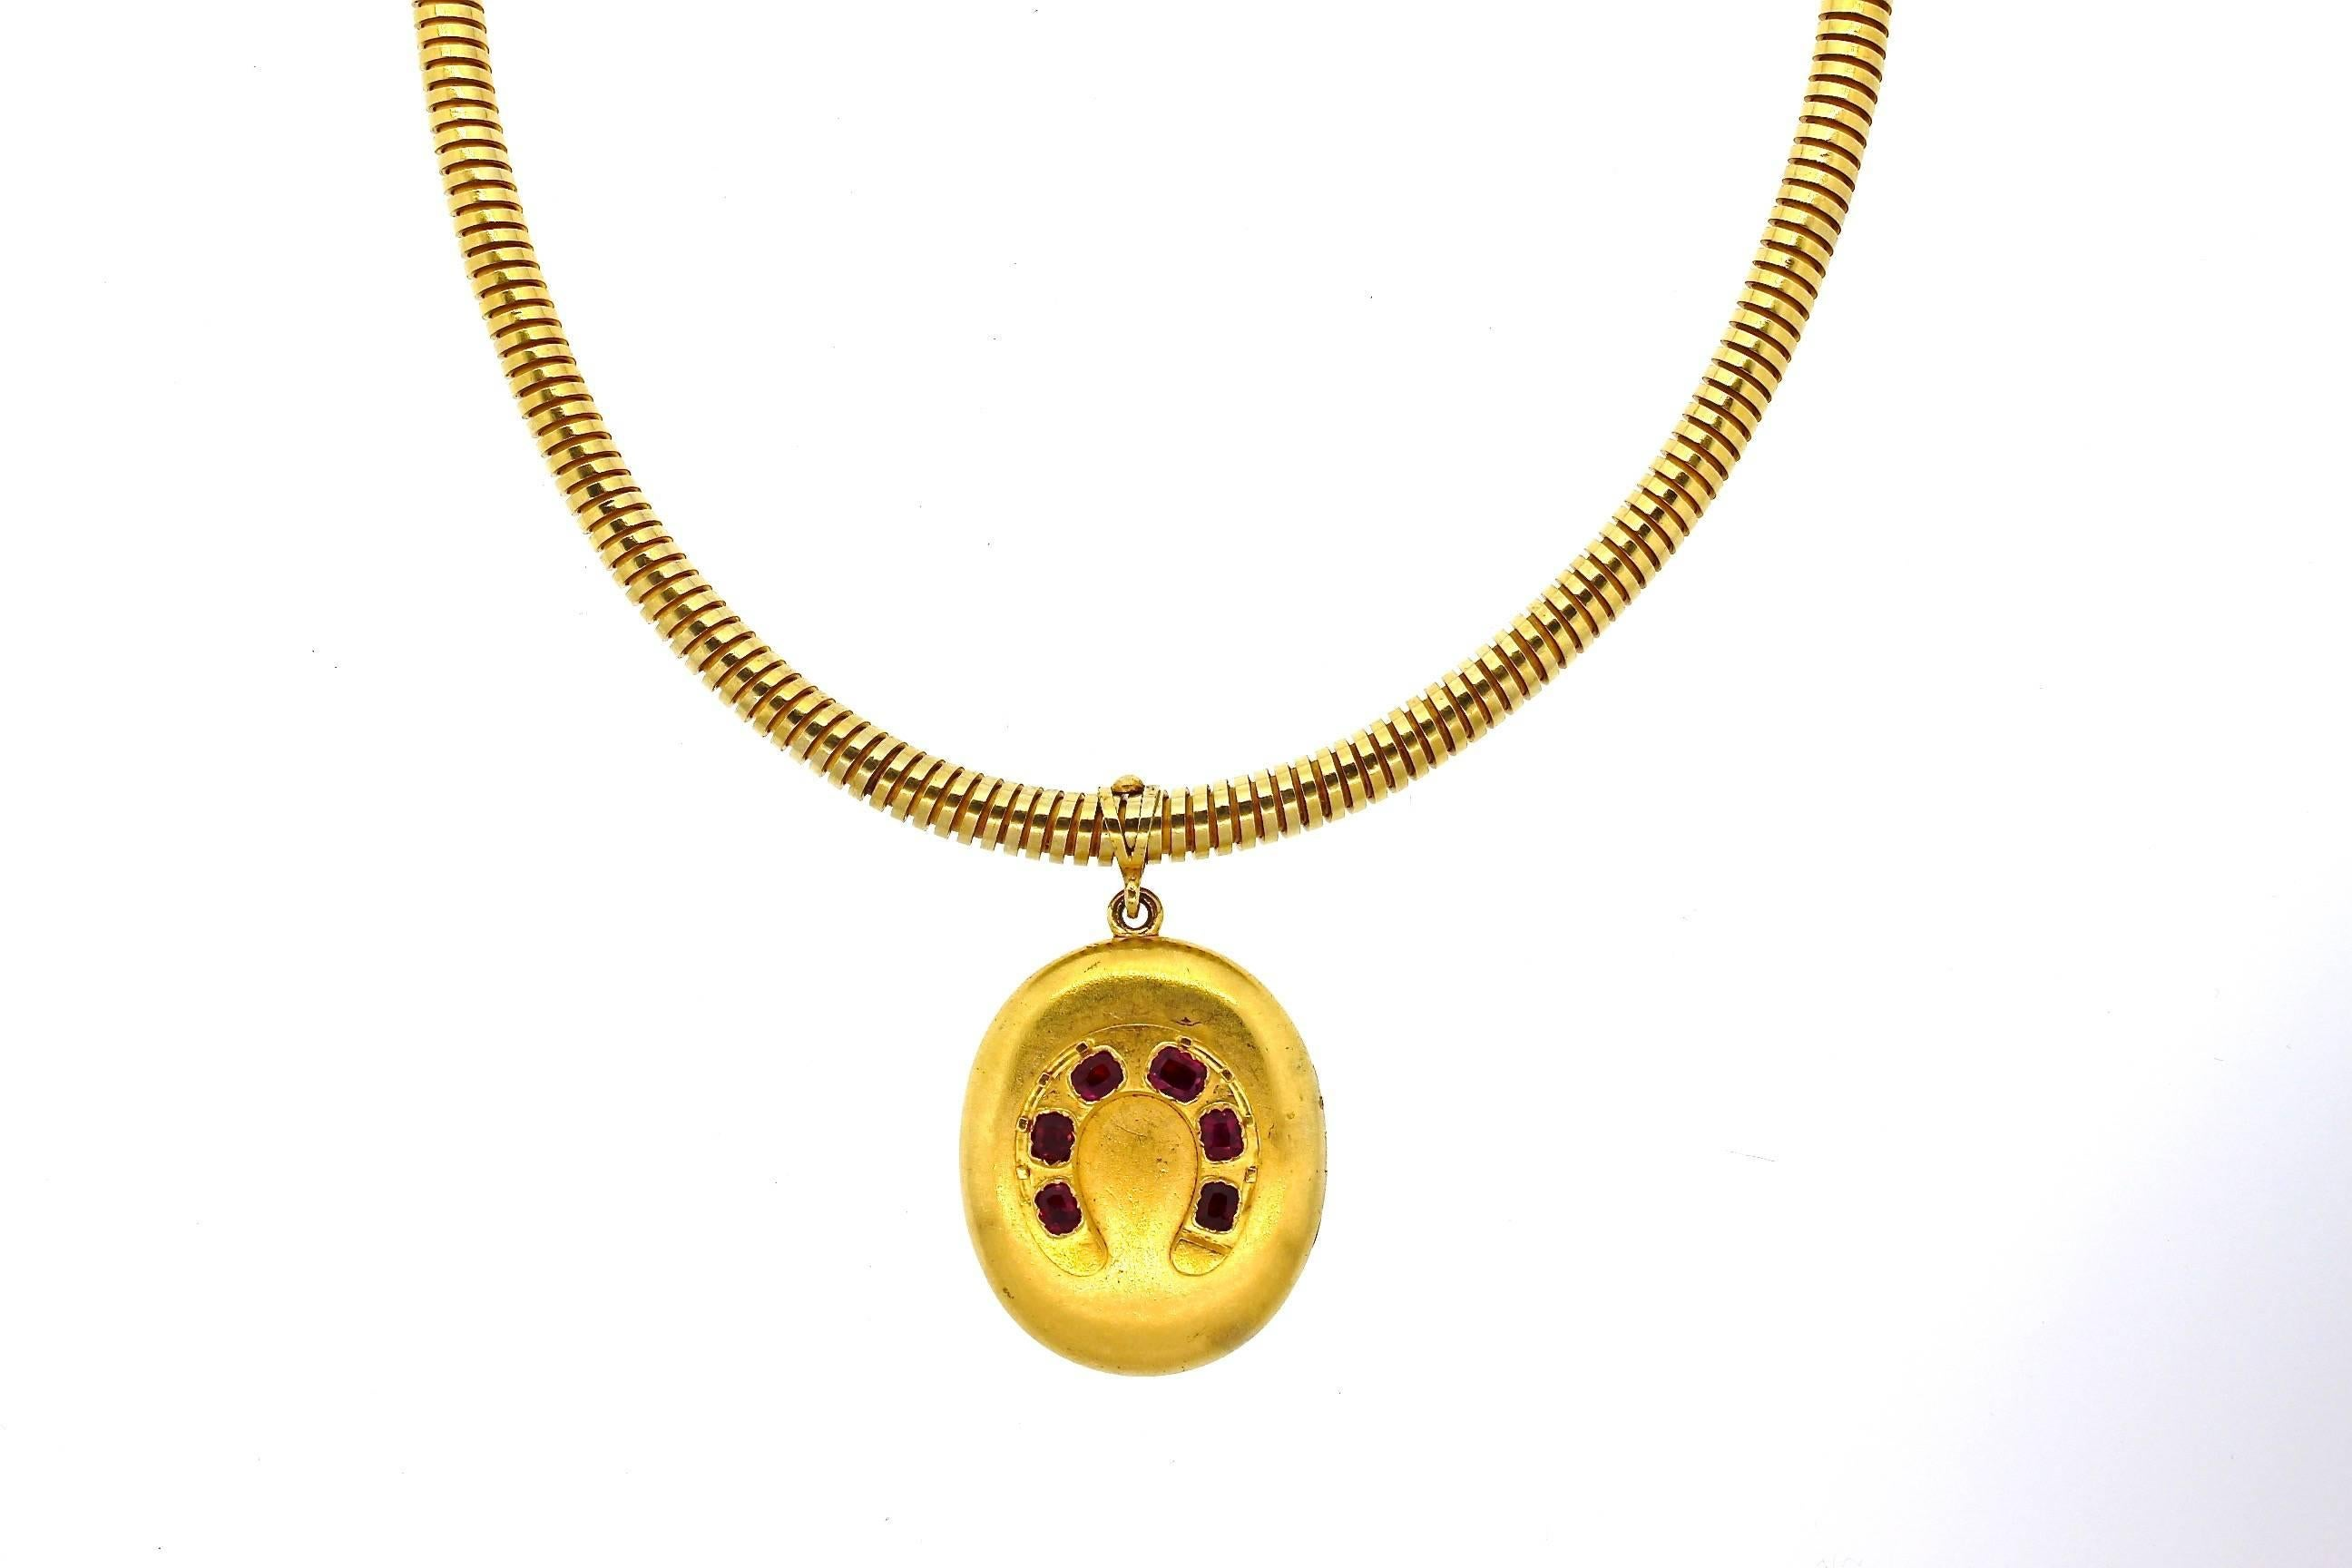 hammered horseshoe gallery product yellow necklace designs gold pendant lyst diamond jewelry kc in